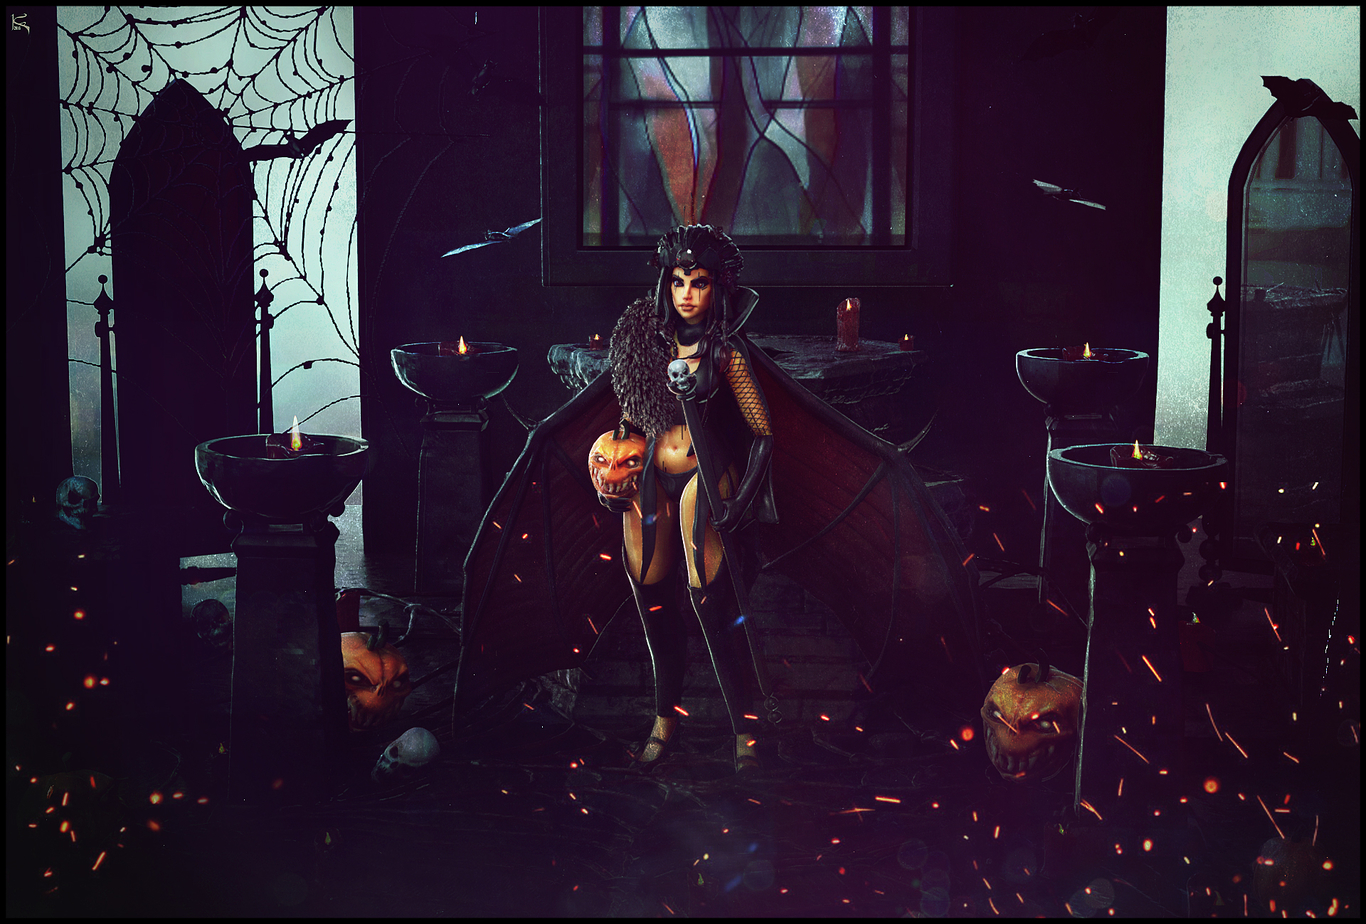 Halloween 2016 Stylized Bat Girl - Trick or Treat